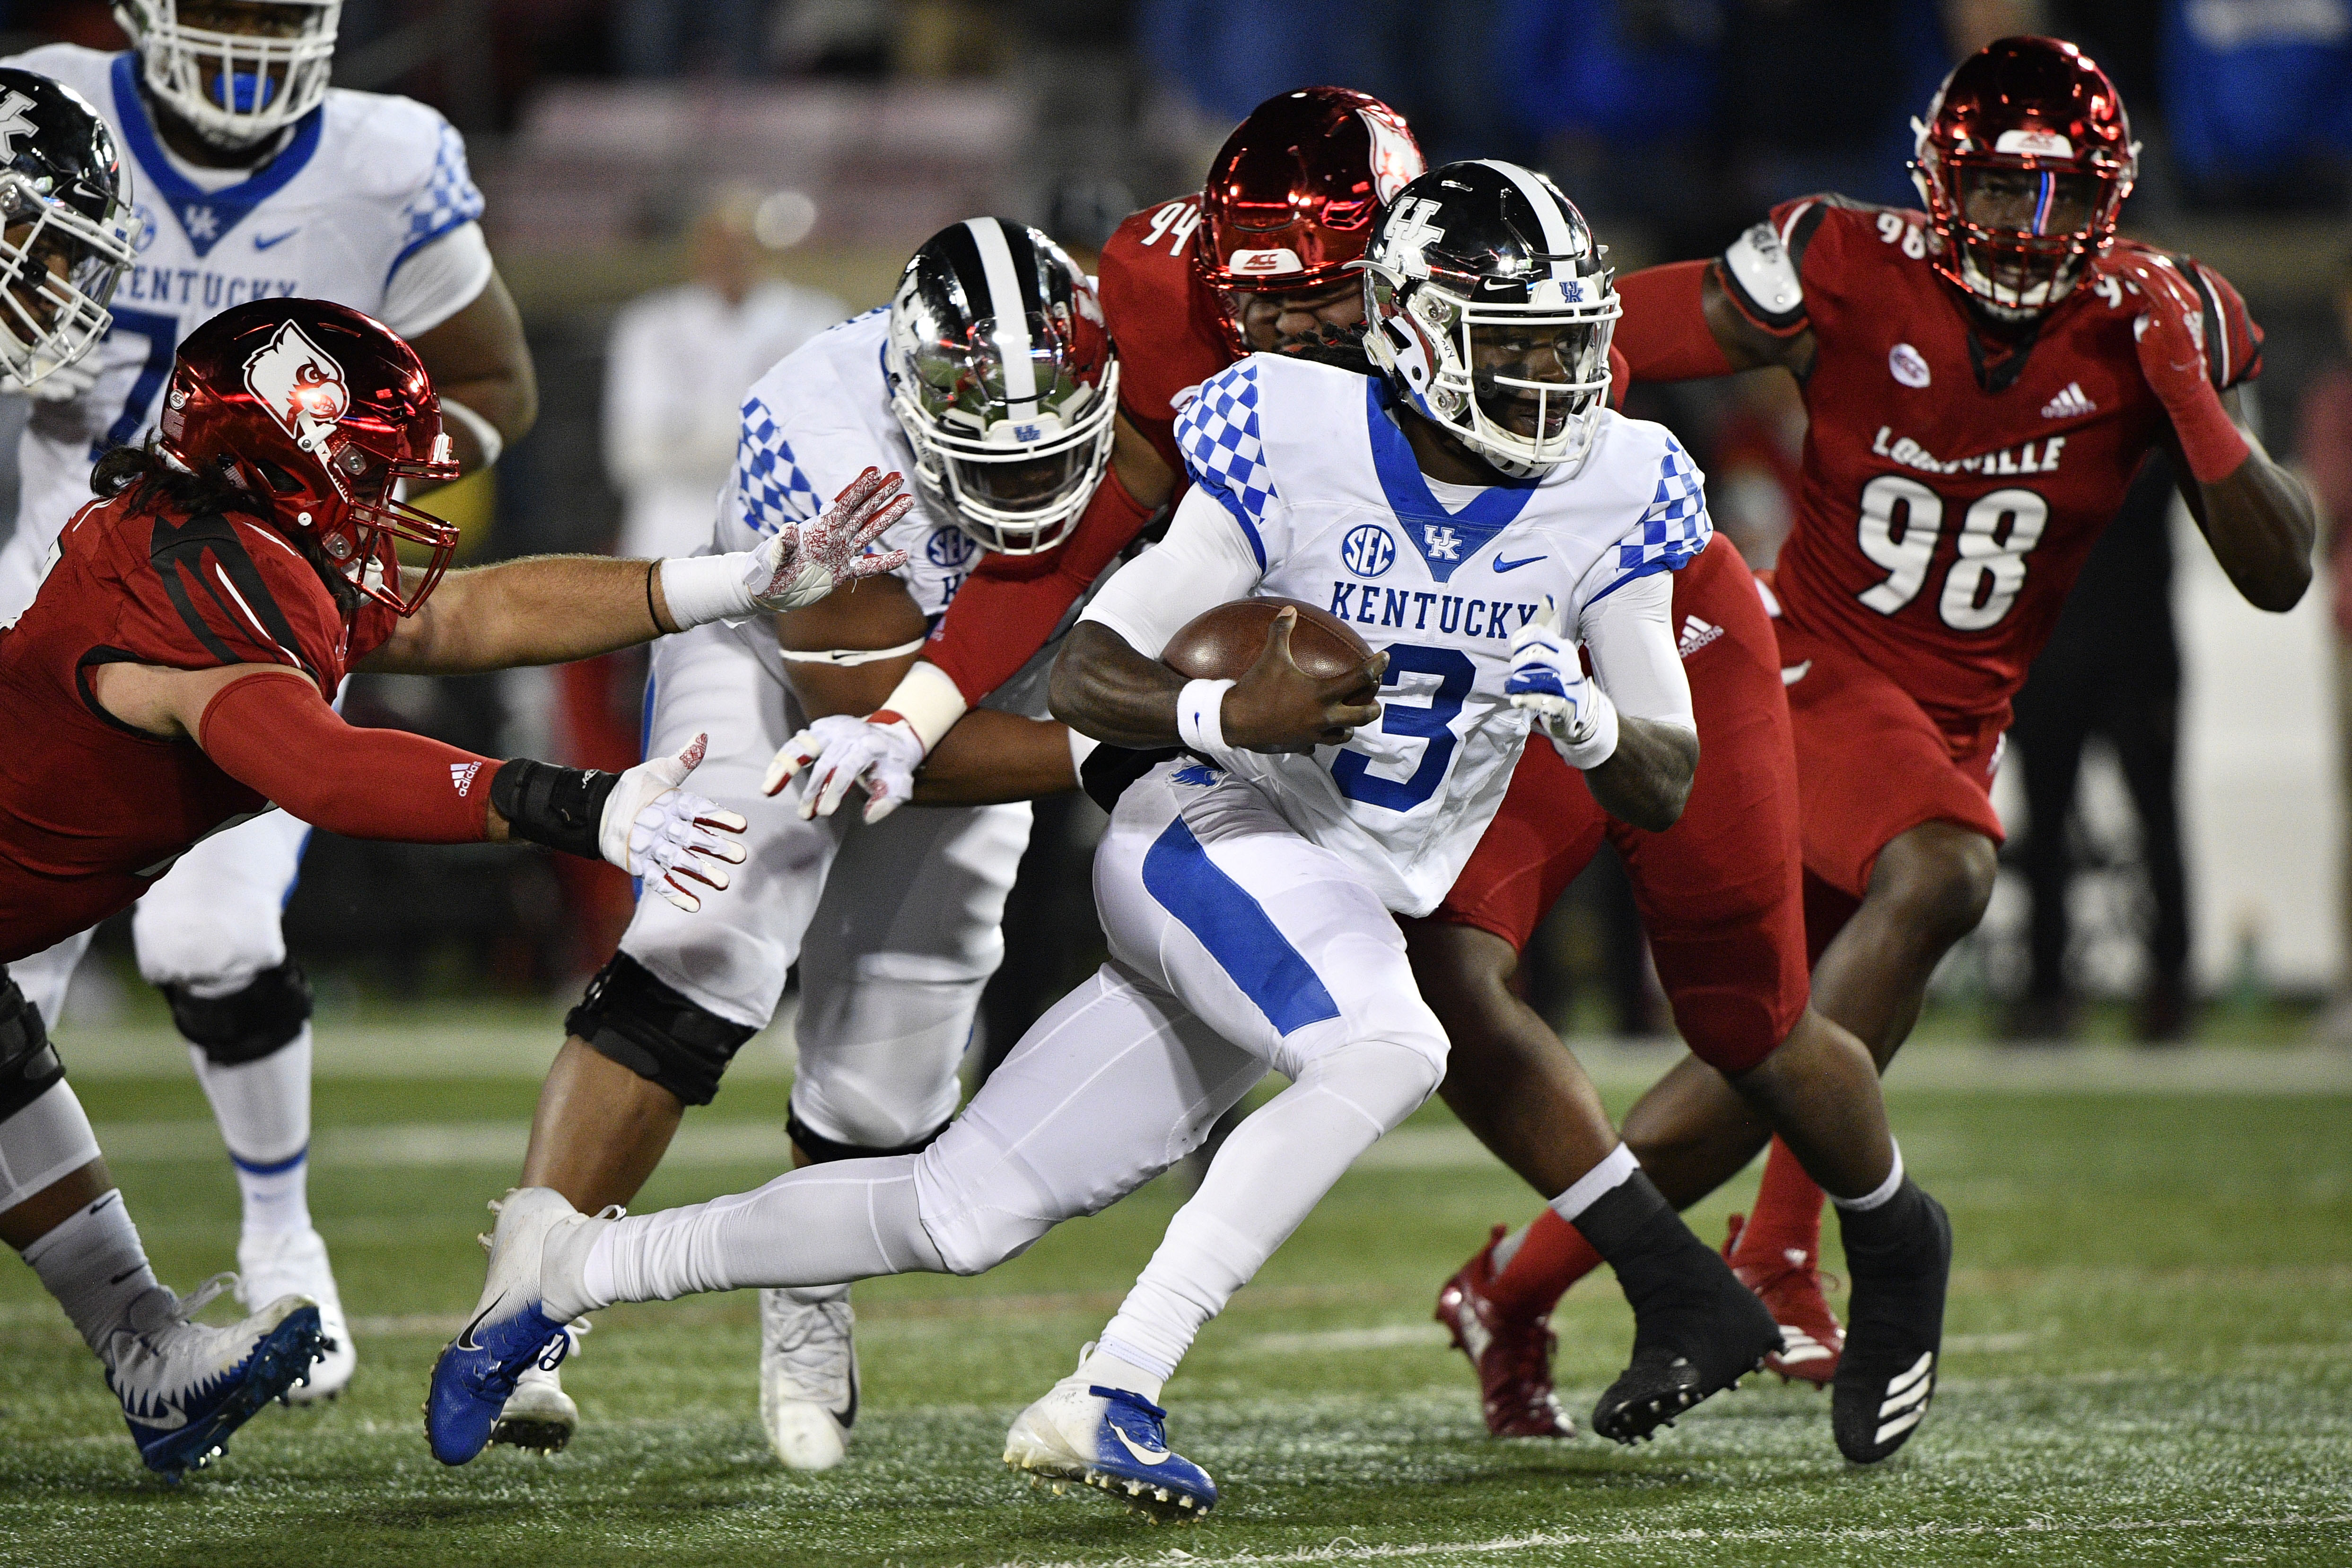 Ranking Kentucky's top 3 possible bowl destinations